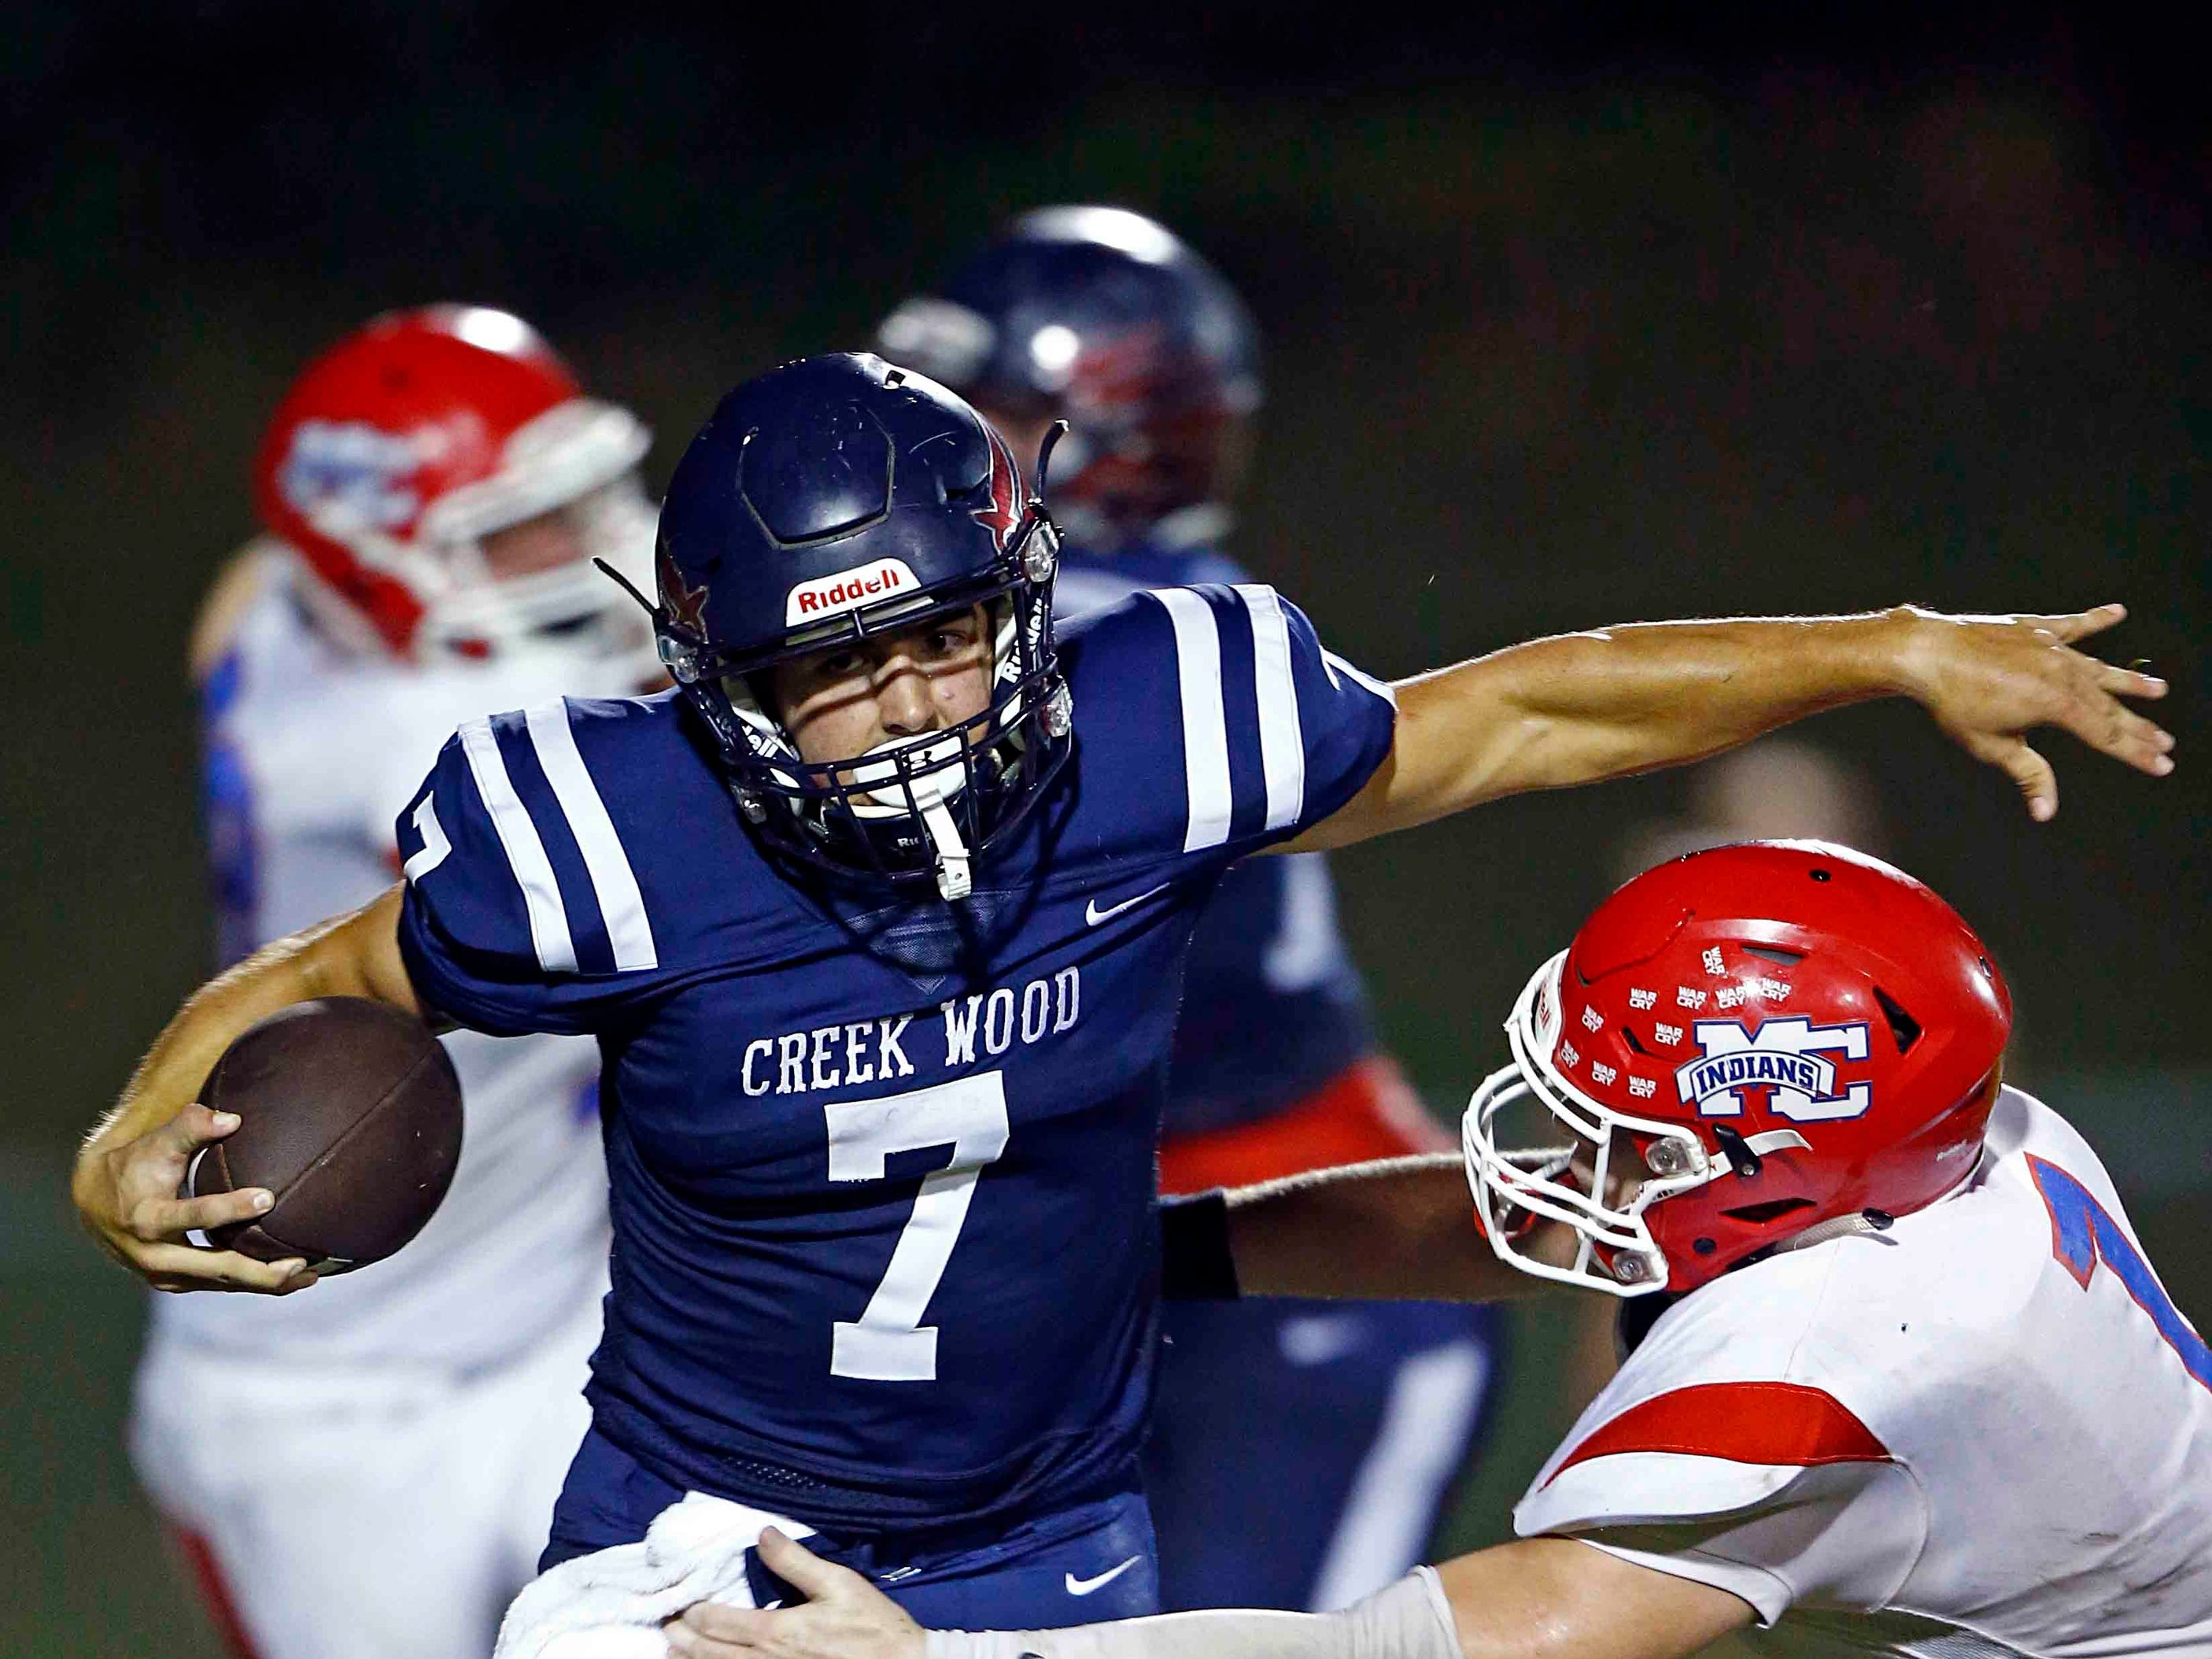 Creek Wood's Mitch Duke (7) is tackled by Montgomery Central's Dylan Williams (1) during their game Friday, Sept. 14, 2018, in Charlotte, Tenn.